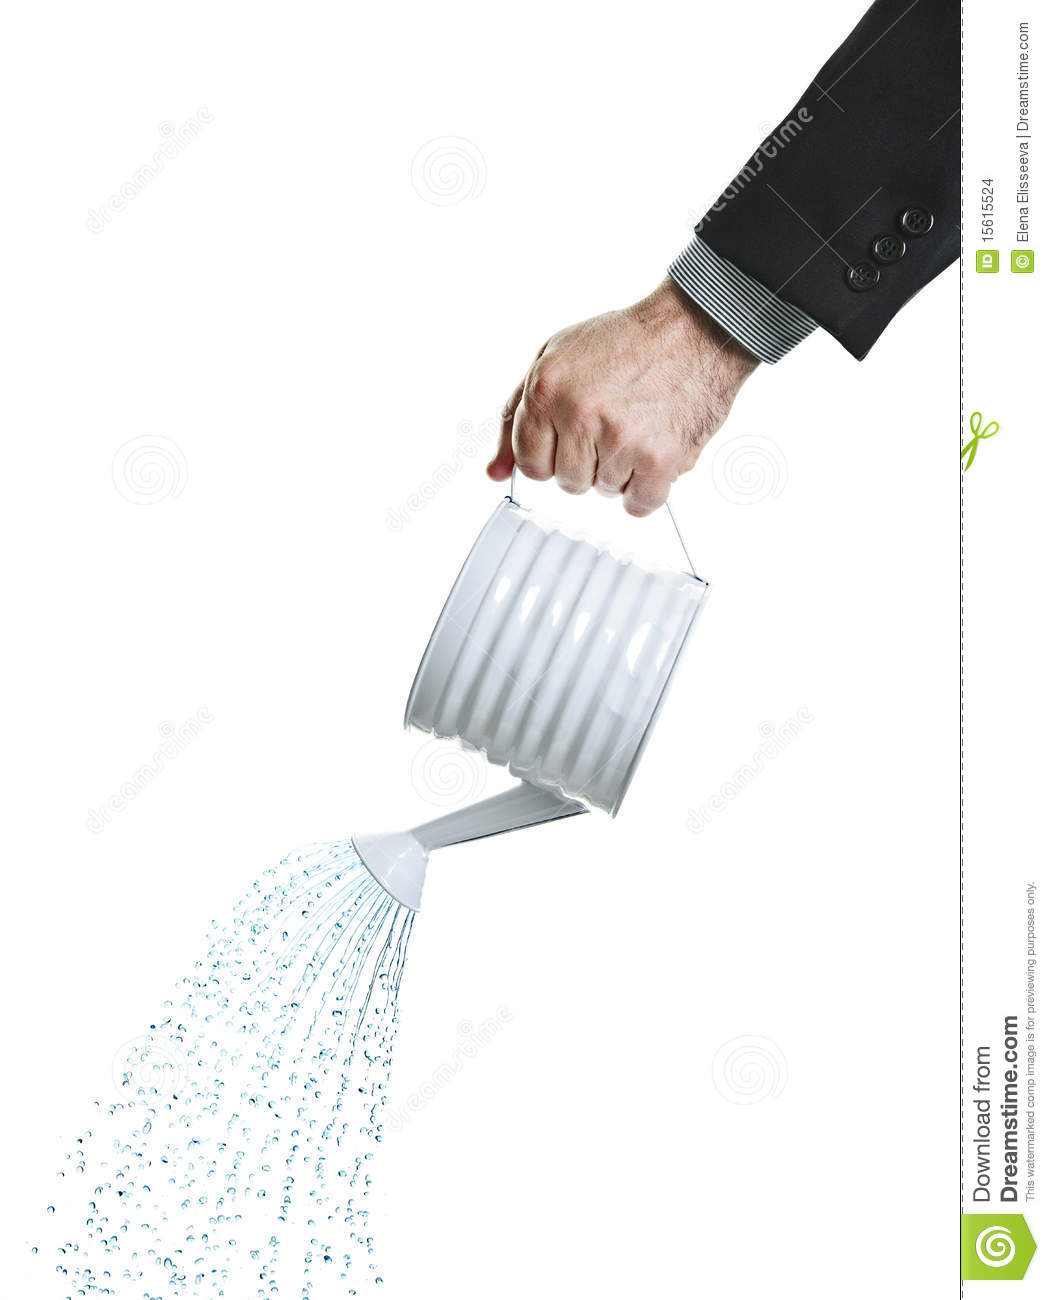 More similar stock images of hand pouring water from watering can